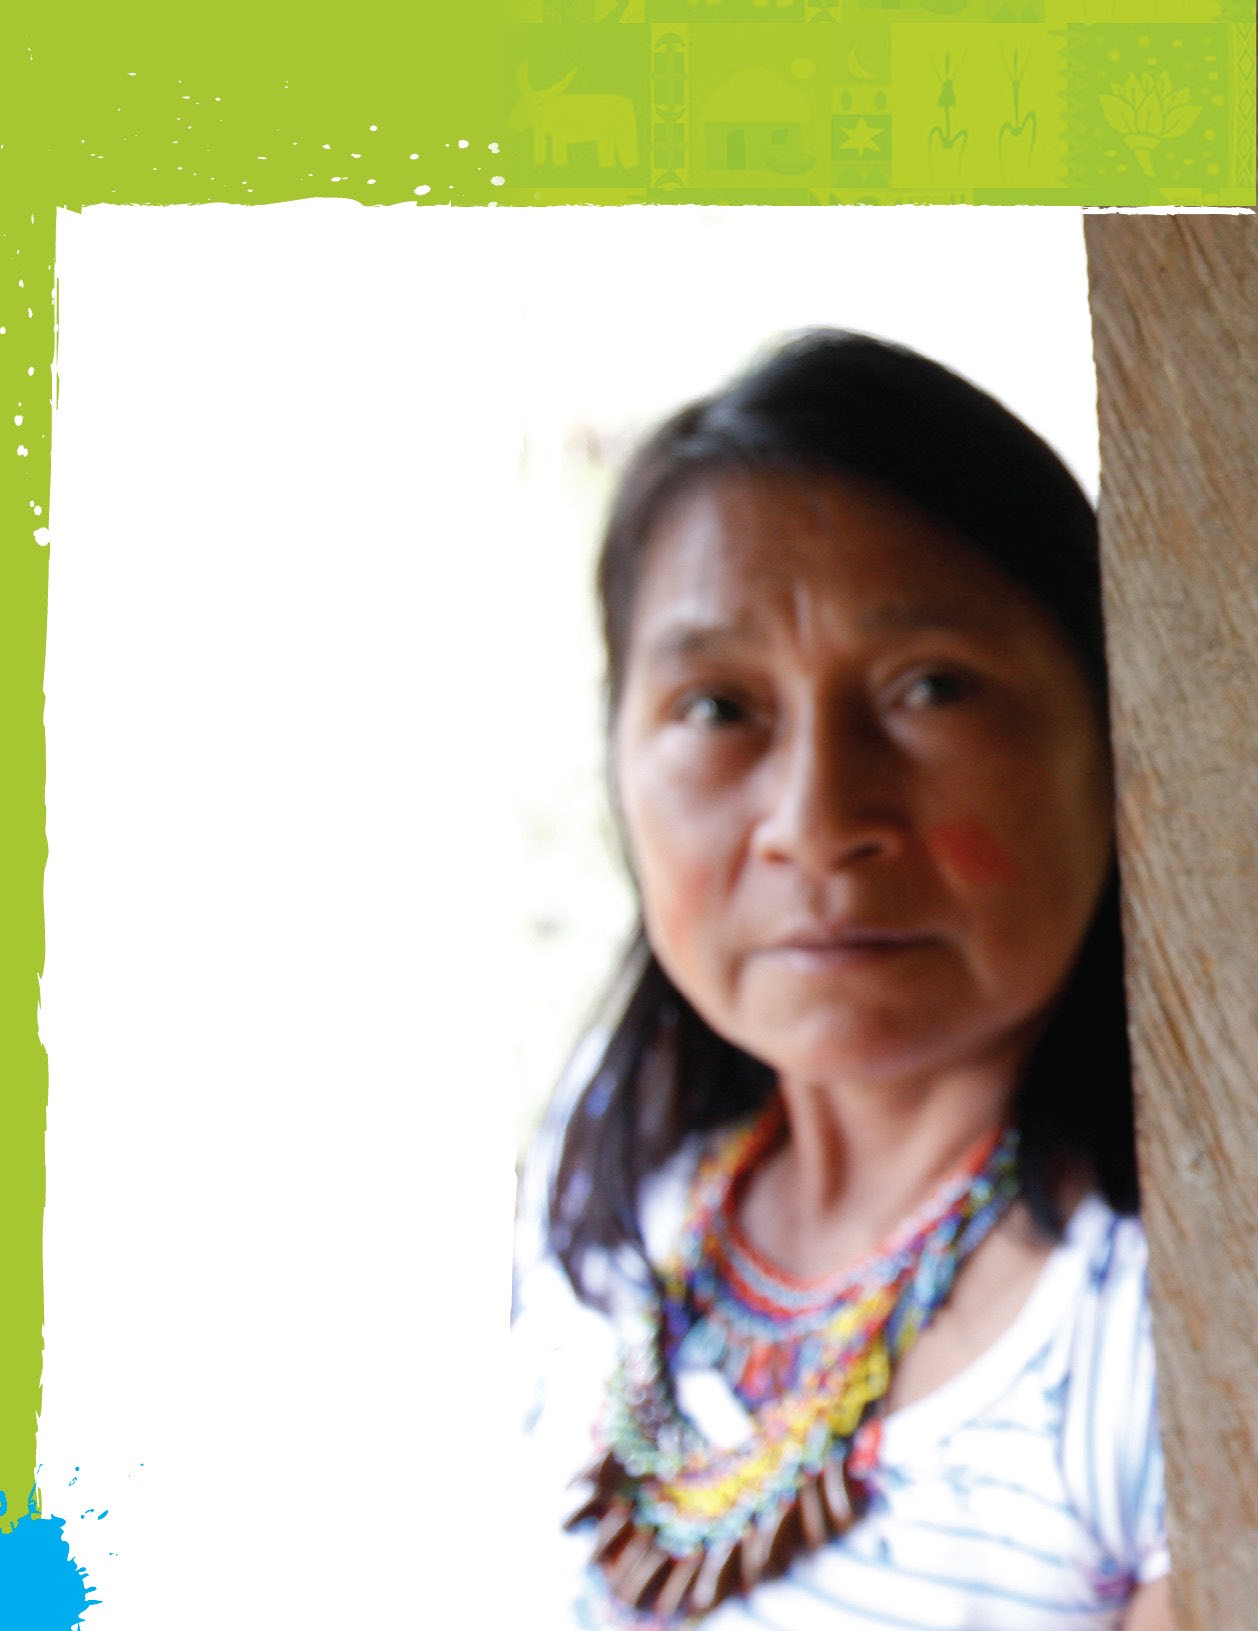 Know Your Rights! The adoption of the United Nations Declaration on the Rights of Indigenous Peoples (UNDRIP) was the result and highlight of many years of work.